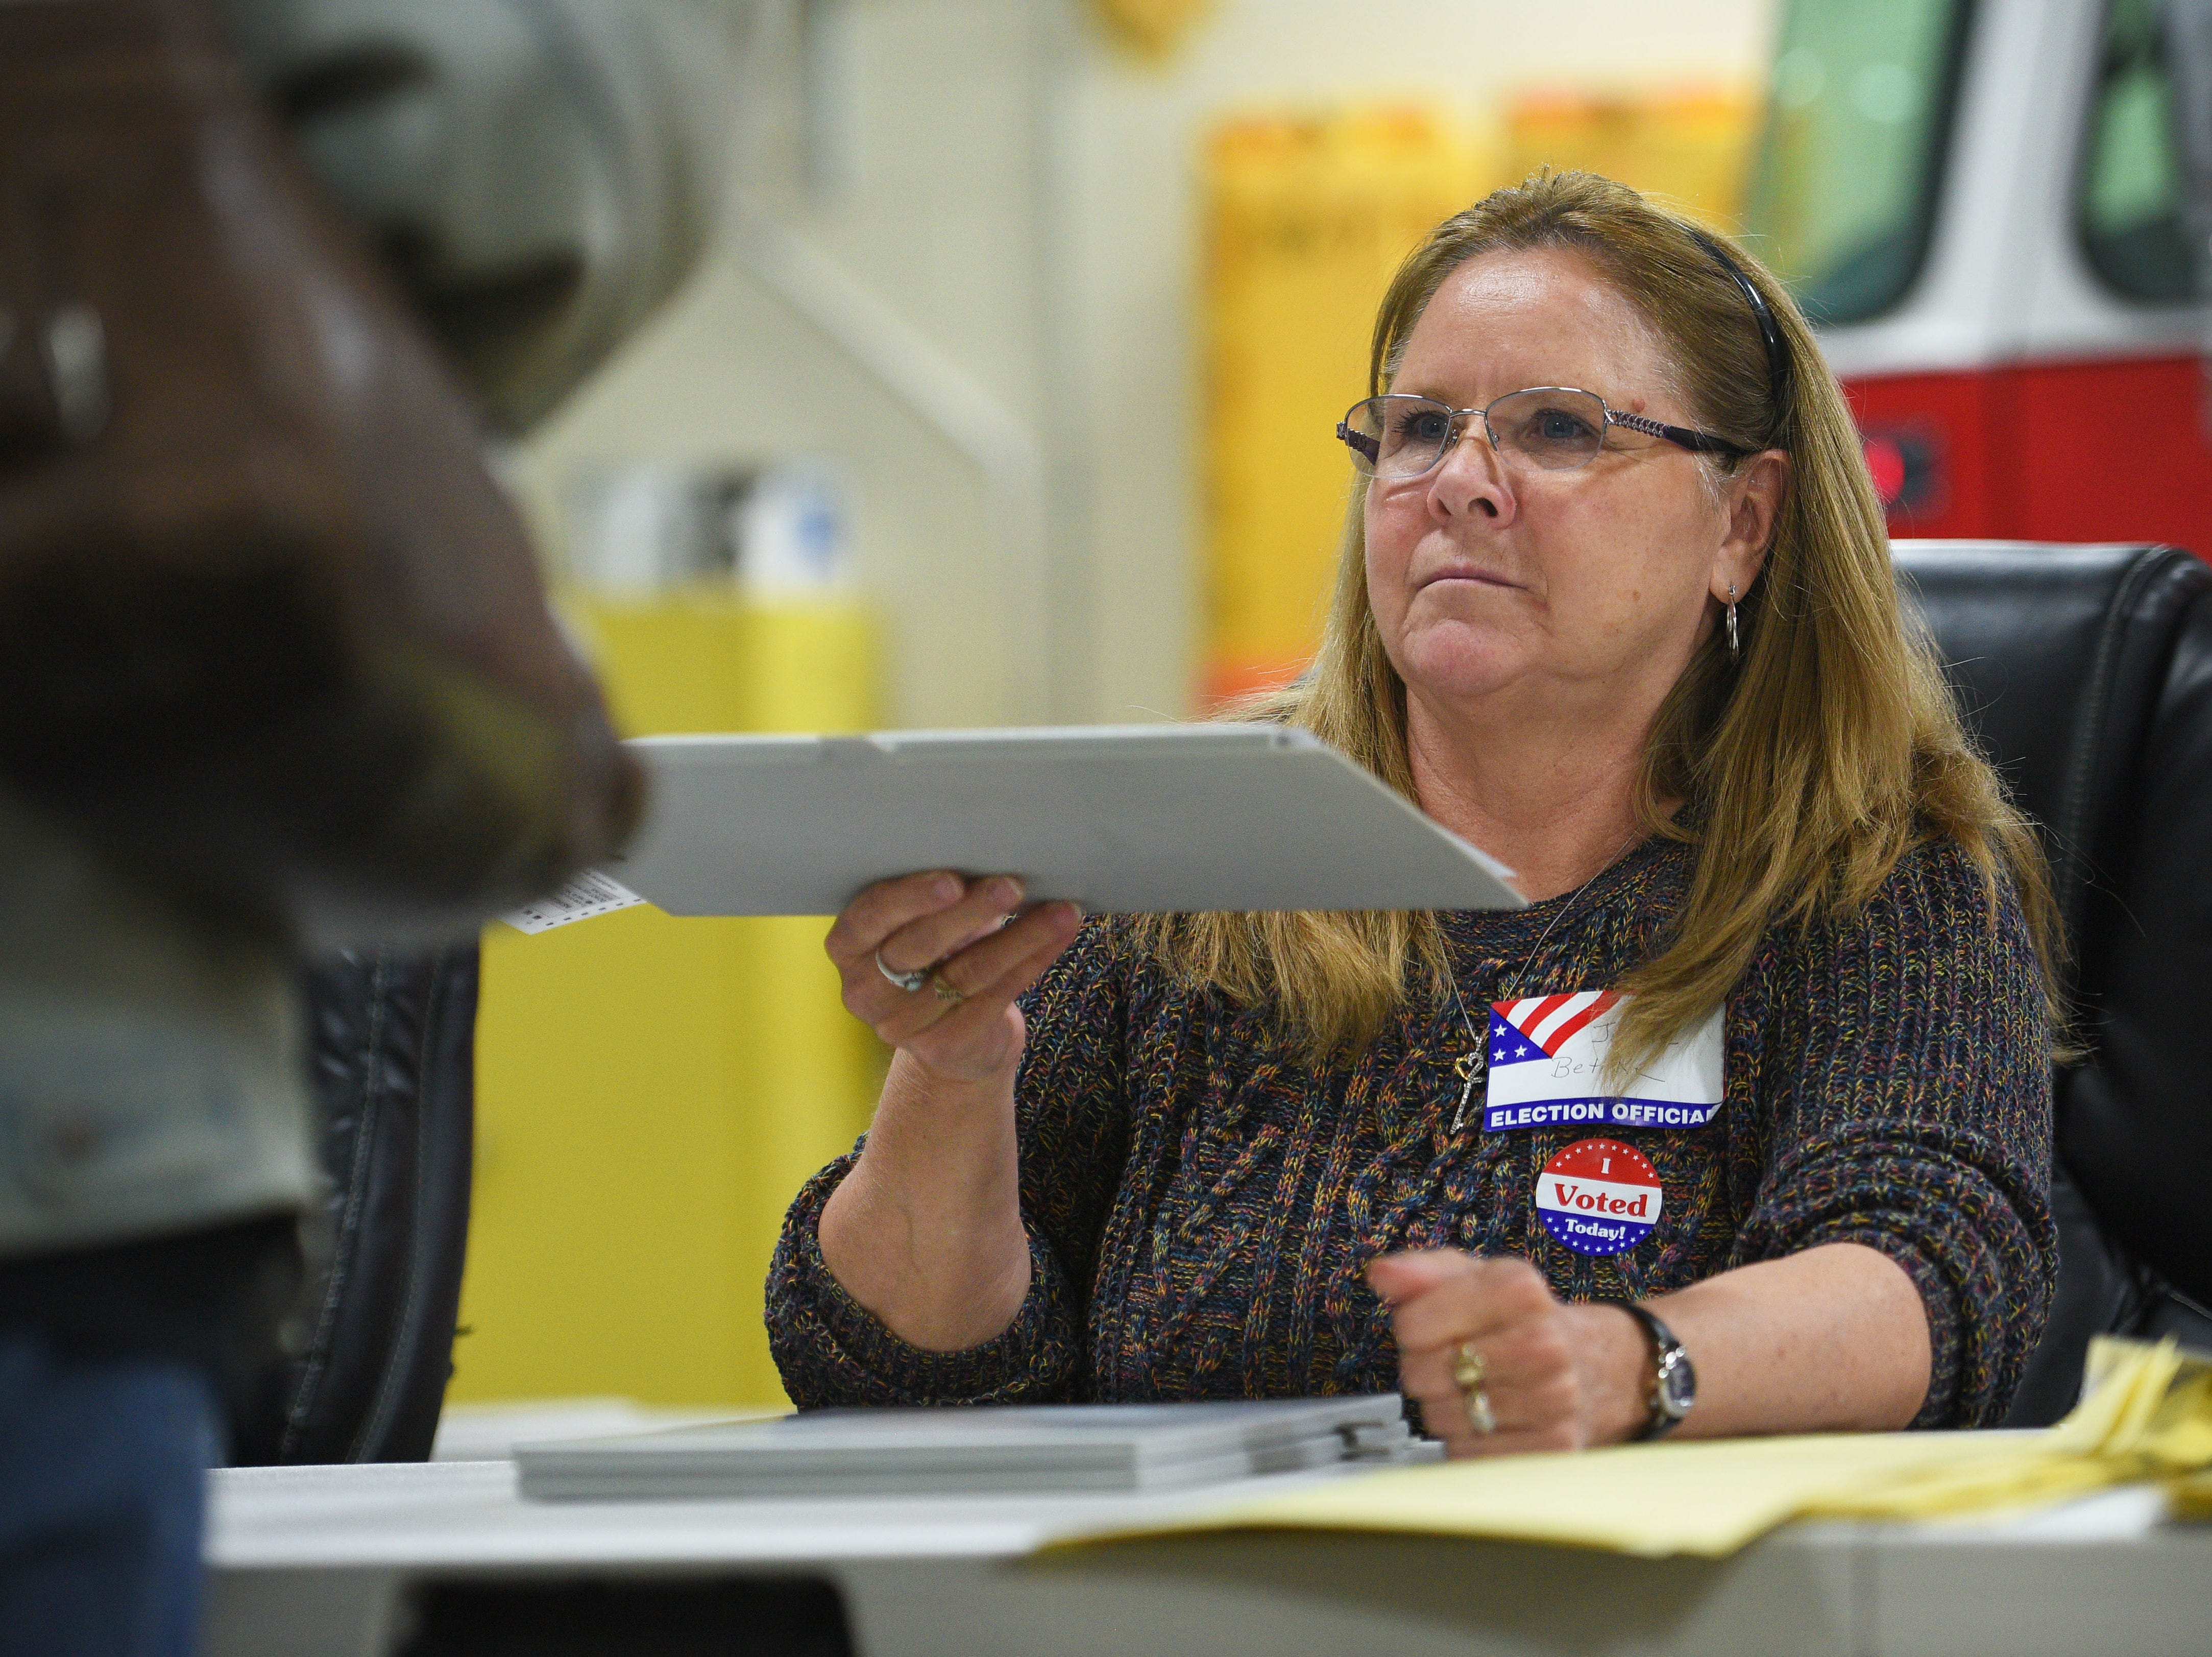 Poll worker Jeanne Bethke hands a ballot out to a voter for the 2018 midterm elections Tuesday, Nov. 6, at Fire Station #7 in Sioux Falls.